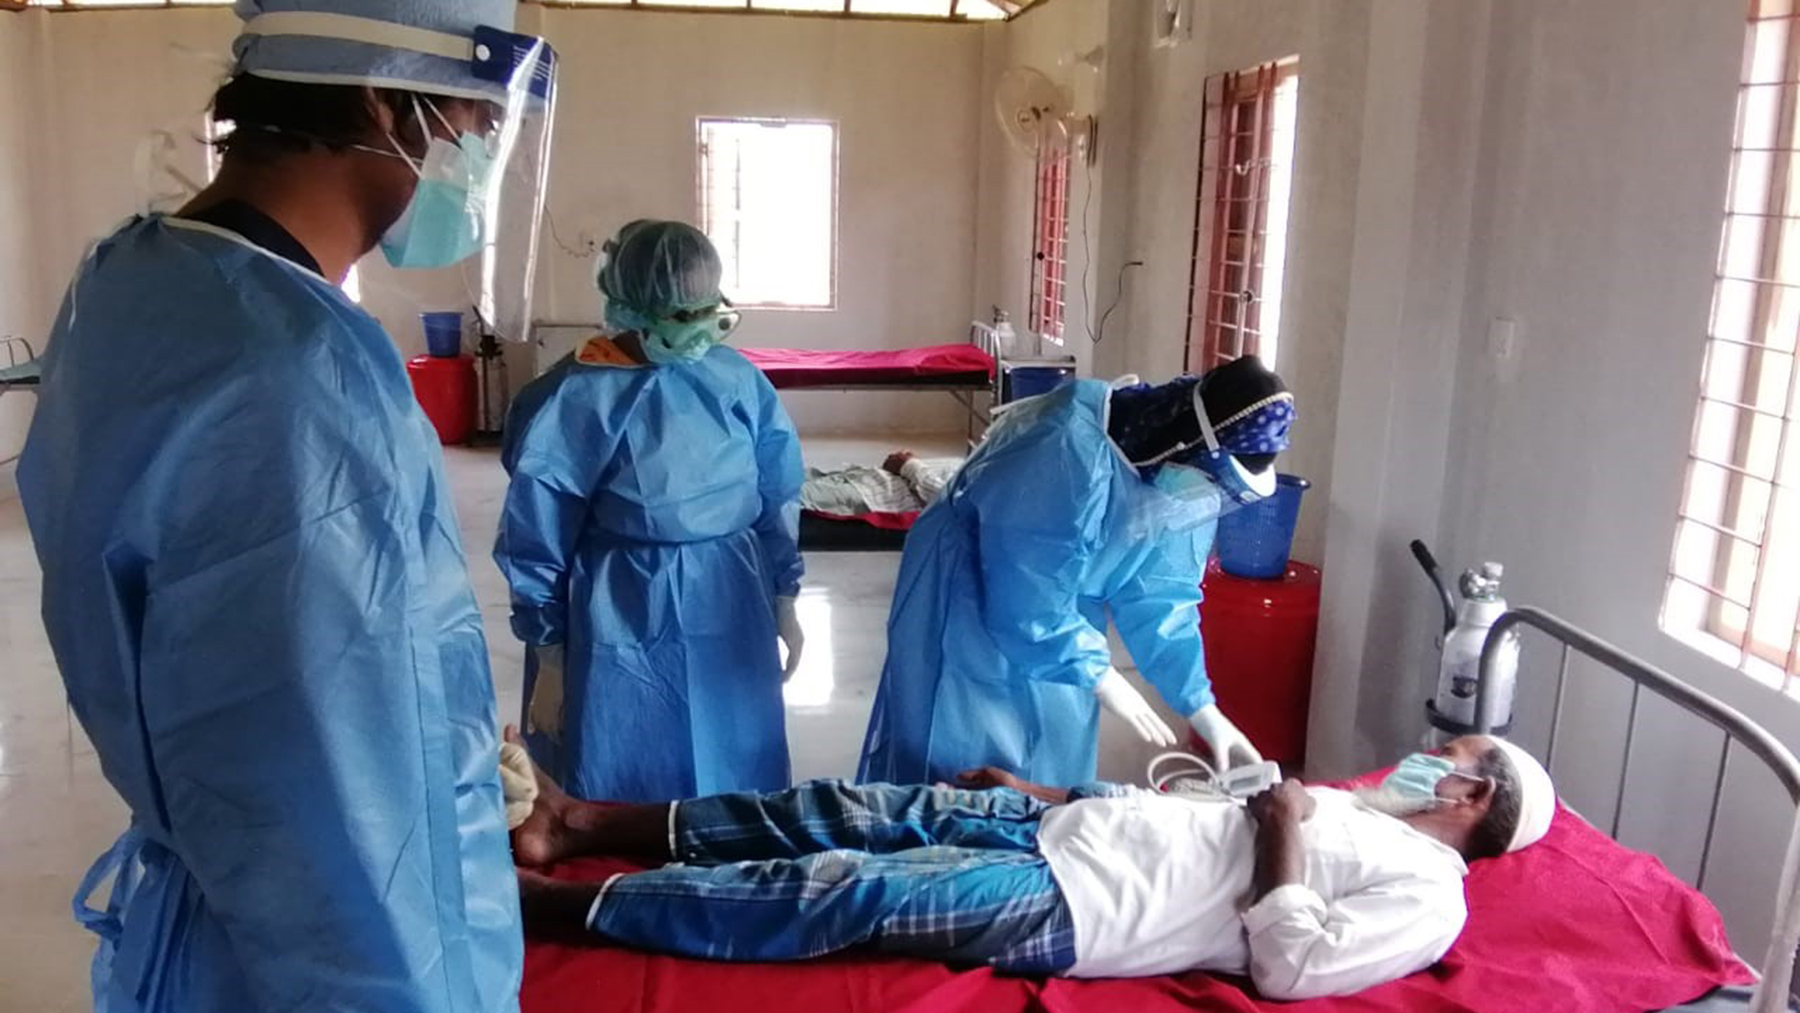 Staff members at the Covid-19 isolation center examine a patient. (Photo courtesy of HOPE for Bangladesh)